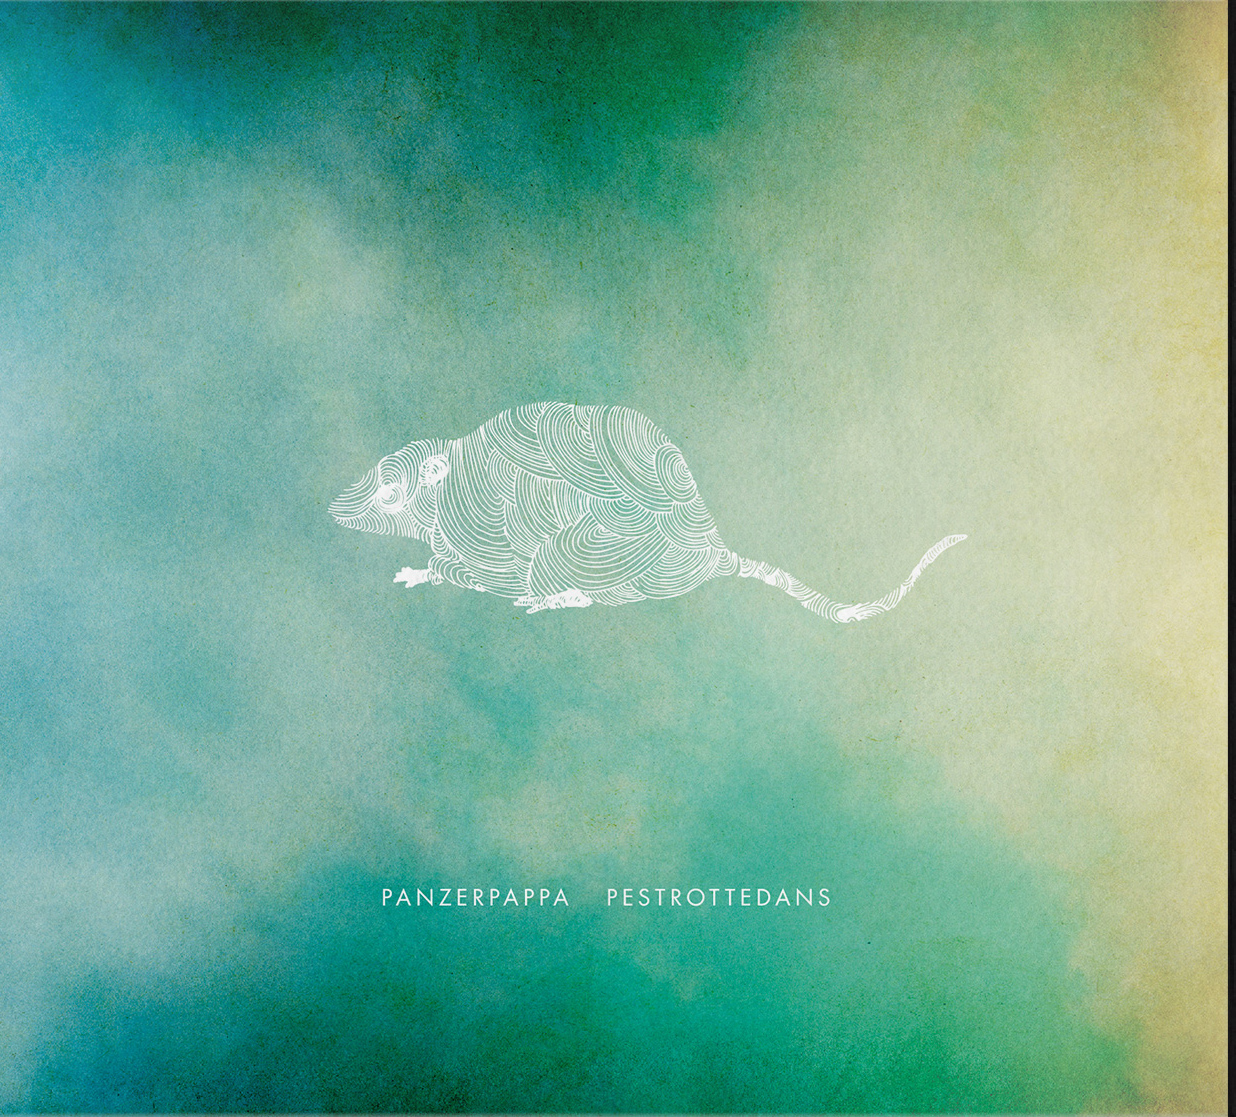 PANZERPAPPA - pestrottedans CD